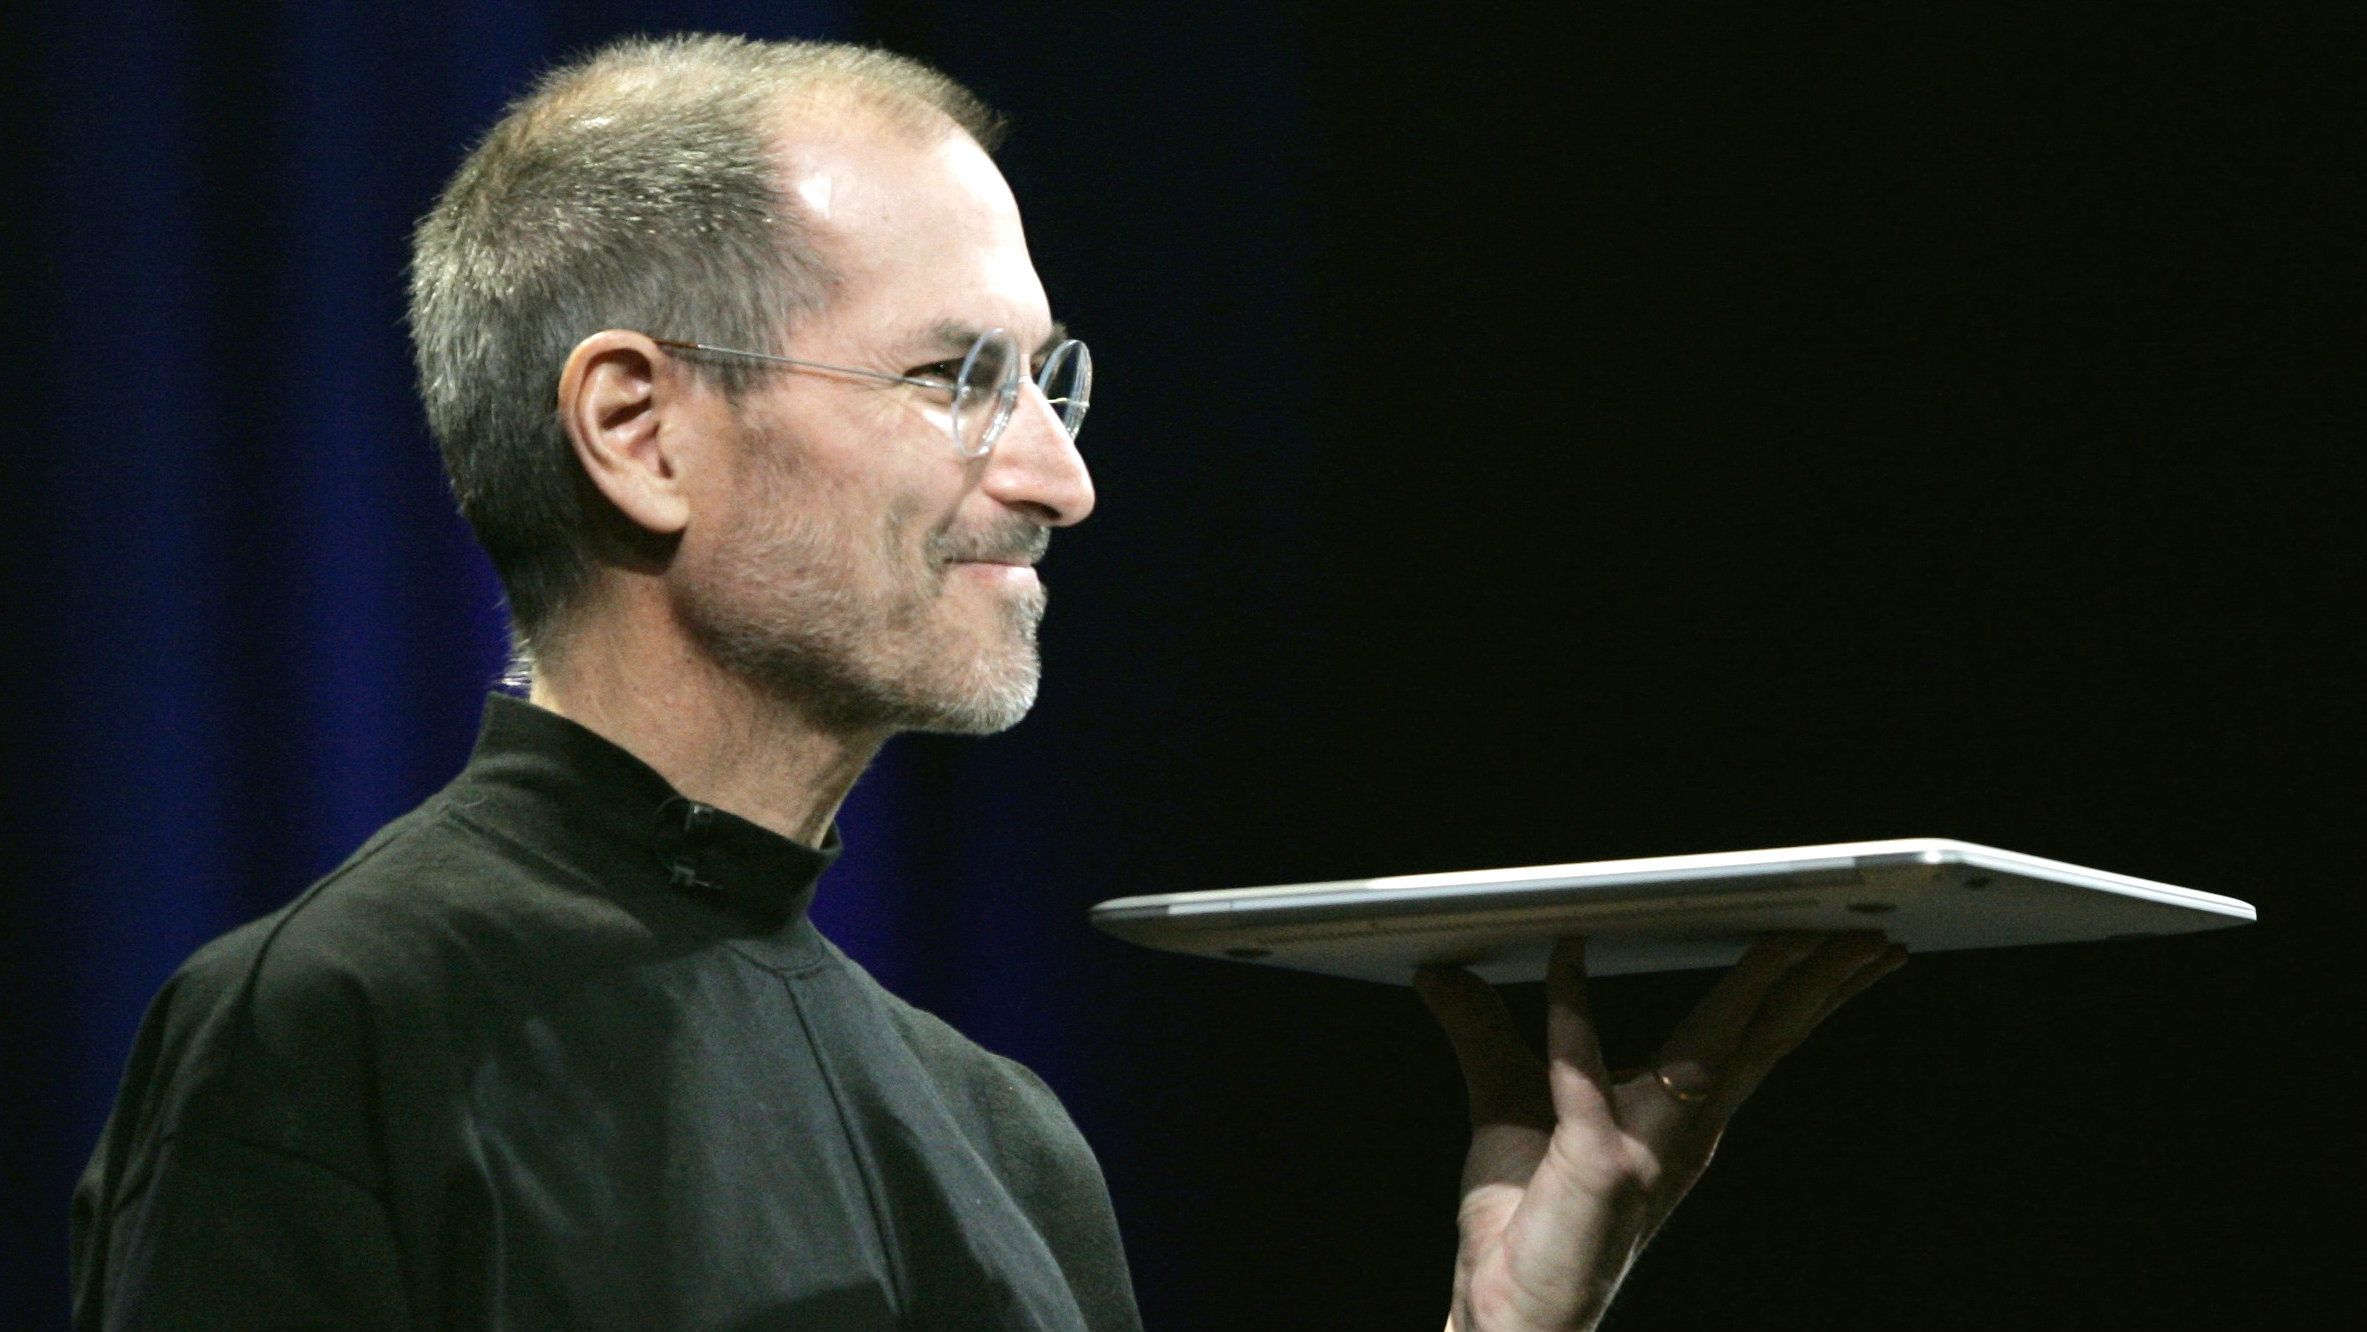 Apple CEO Steve Jobs holds Apple's new Macbook Air notebook computer as he delivers his keynote address during the Macworld Convention and Expo in San Francisco January 15, 2008. REUTERS/Robert Galbraith (UNITED STATES) FOR BEST QUALITY AVAILABLE: ALSO SEE GM1E7AM09EJ01